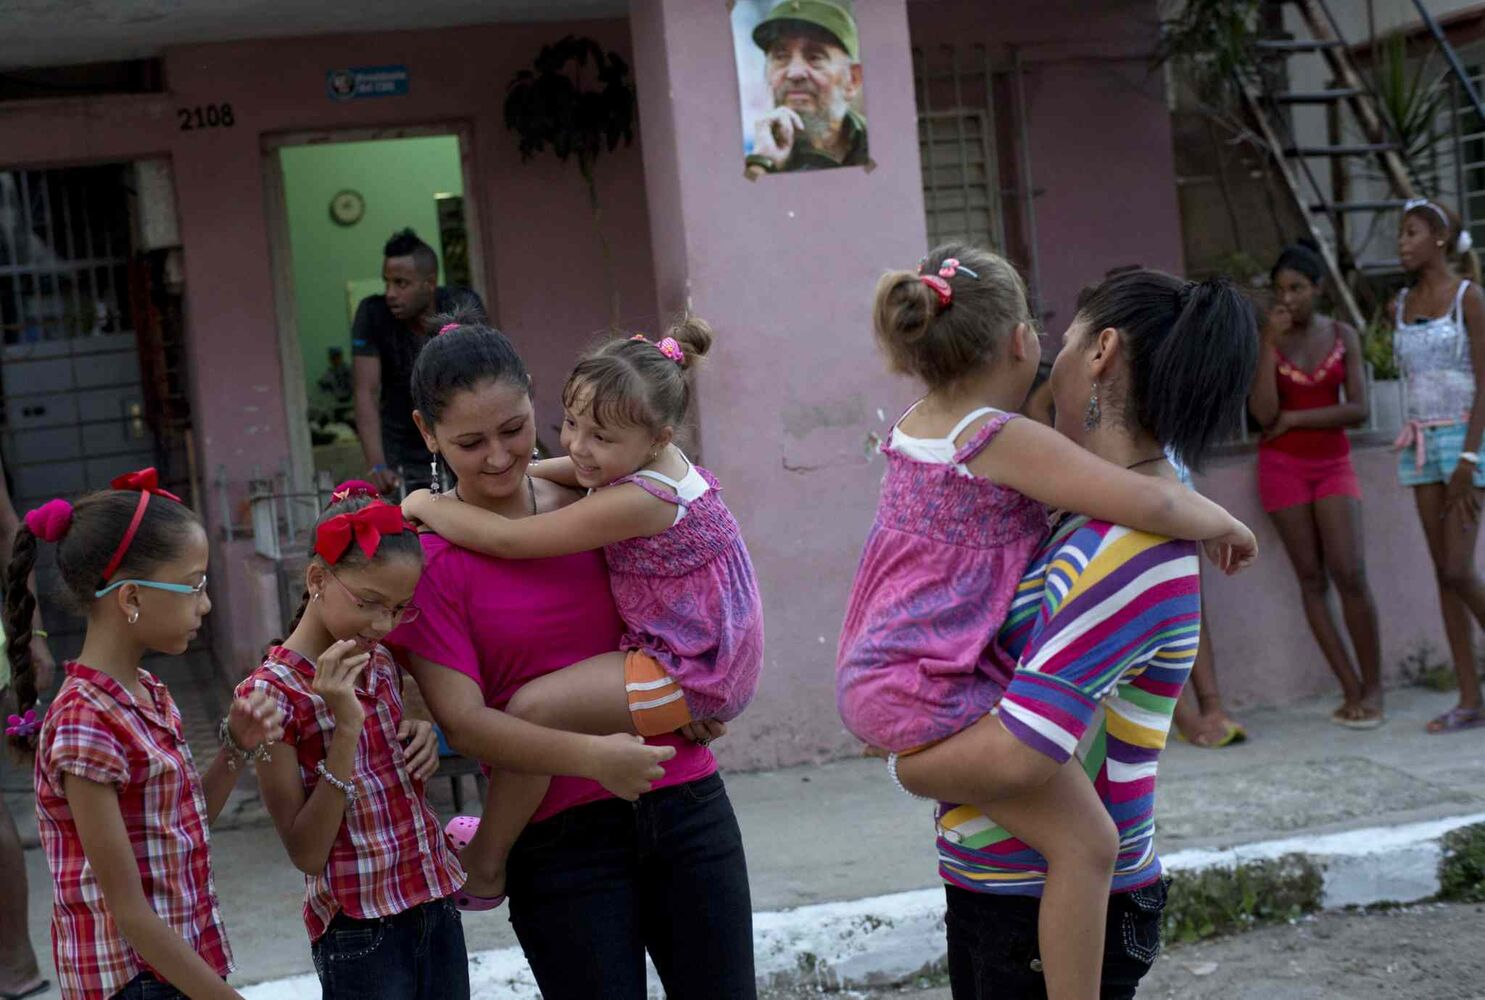 Nine-year-old twins Camila and Carla Rodriguez, (left), 18-year-old twins Kamar and Sahar Youssef and six-year-old twins Asley and Aslen Velazquez, pose for portraits along their street where a poster of Fidel Castro hangs in Havana, Cuba. (Ramon Espinosa / The Associated Press)